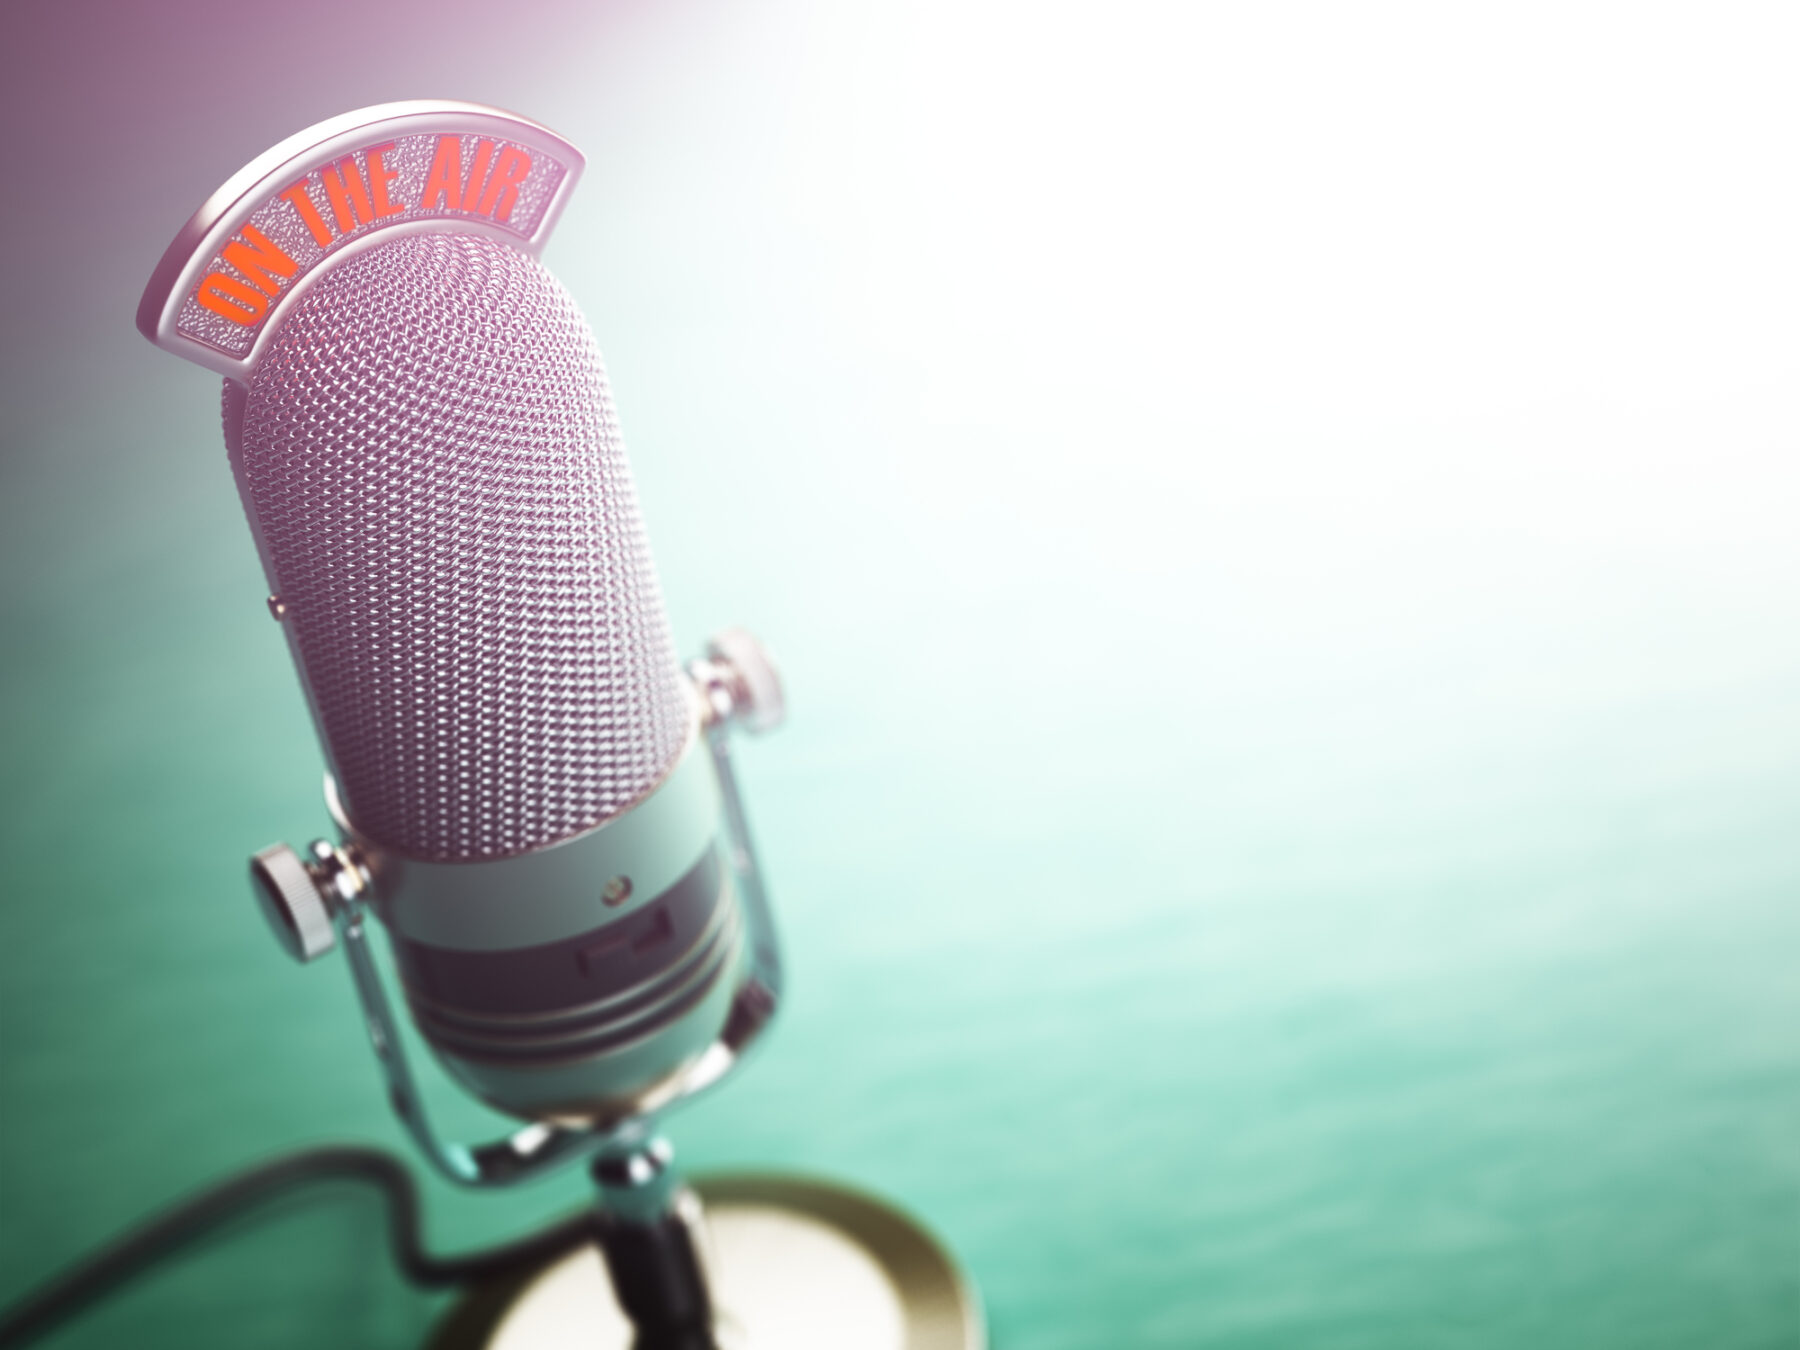 11 Simple Rules of Podcast Guest Etiquette